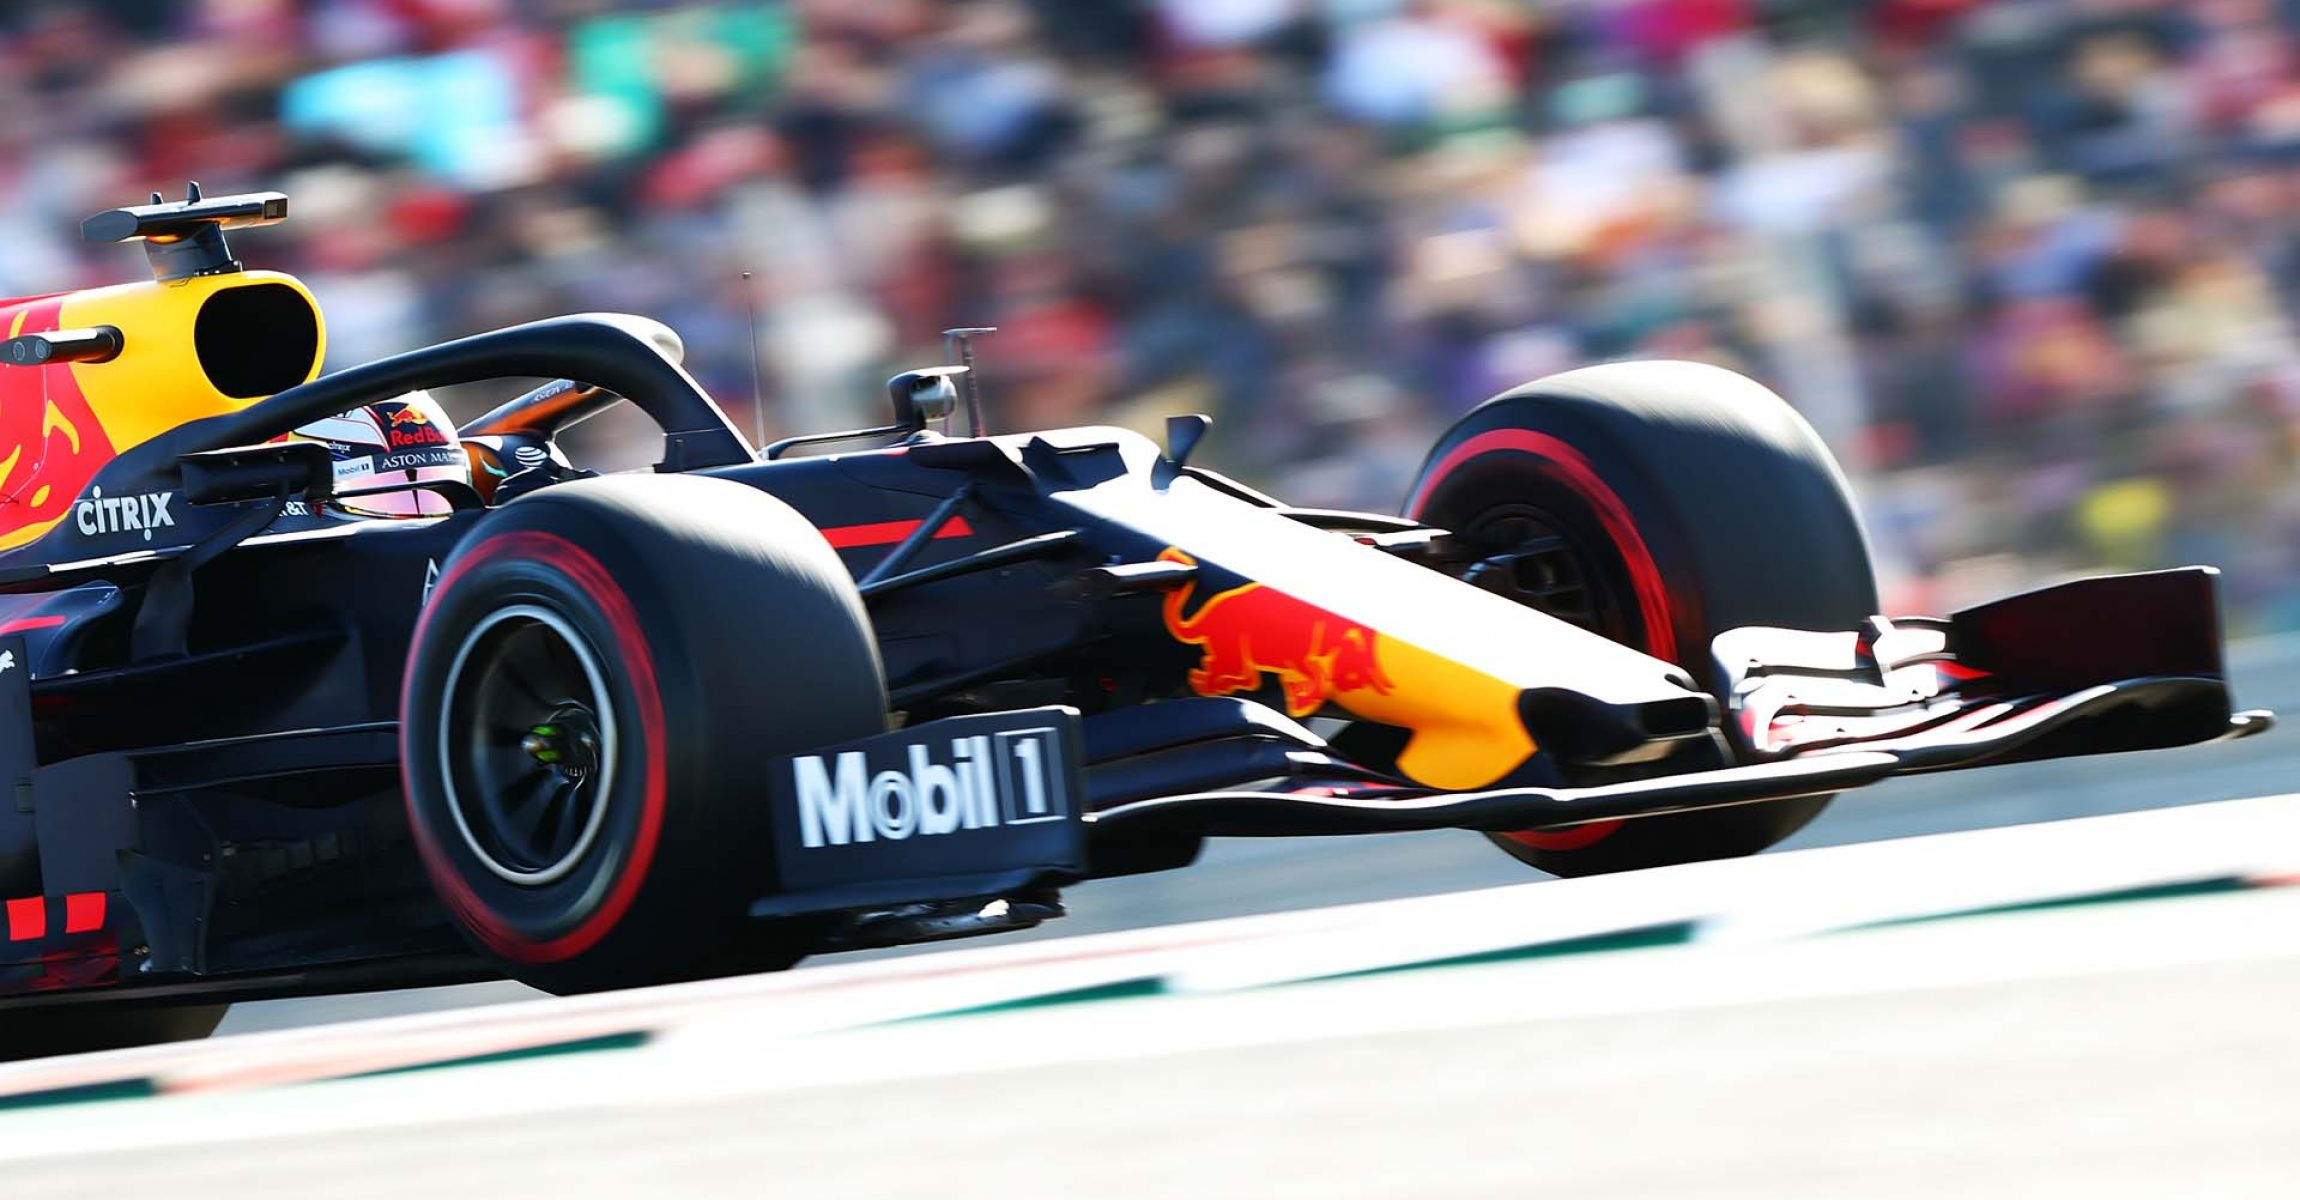 AUSTIN, TEXAS - NOVEMBER 02: Max Verstappen of the Netherlands driving the (33) Aston Martin Red Bull Racing RB15 on track during qualifying for the F1 Grand Prix of USA at Circuit of The Americas on November 02, 2019 in Austin, Texas. (Photo by Dan Istitene/Getty Images) // Getty Images / Red Bull Content Pool // AP-222NE2GMH2111 // Usage for editorial use only //